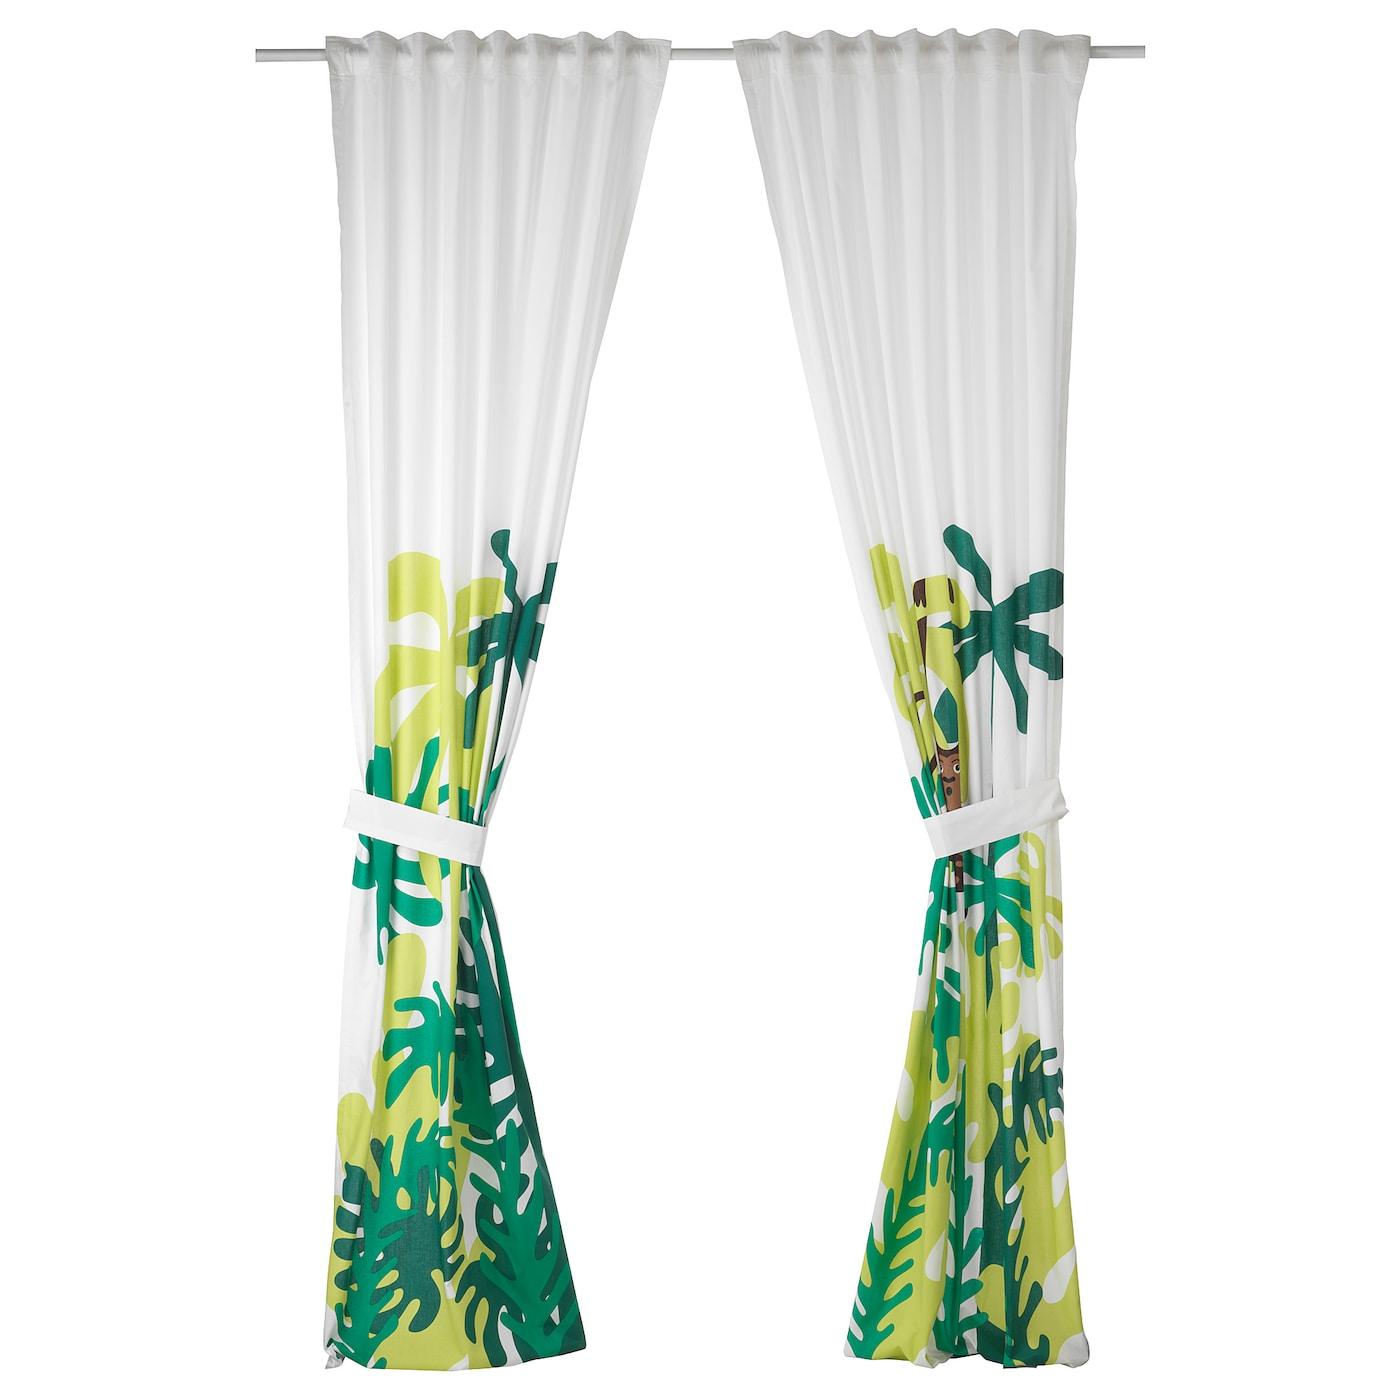 IKEA DJUNGELSKOG curtains with tie-backs, 1 pair Easy to keep clean; machine wash hot (60°C).